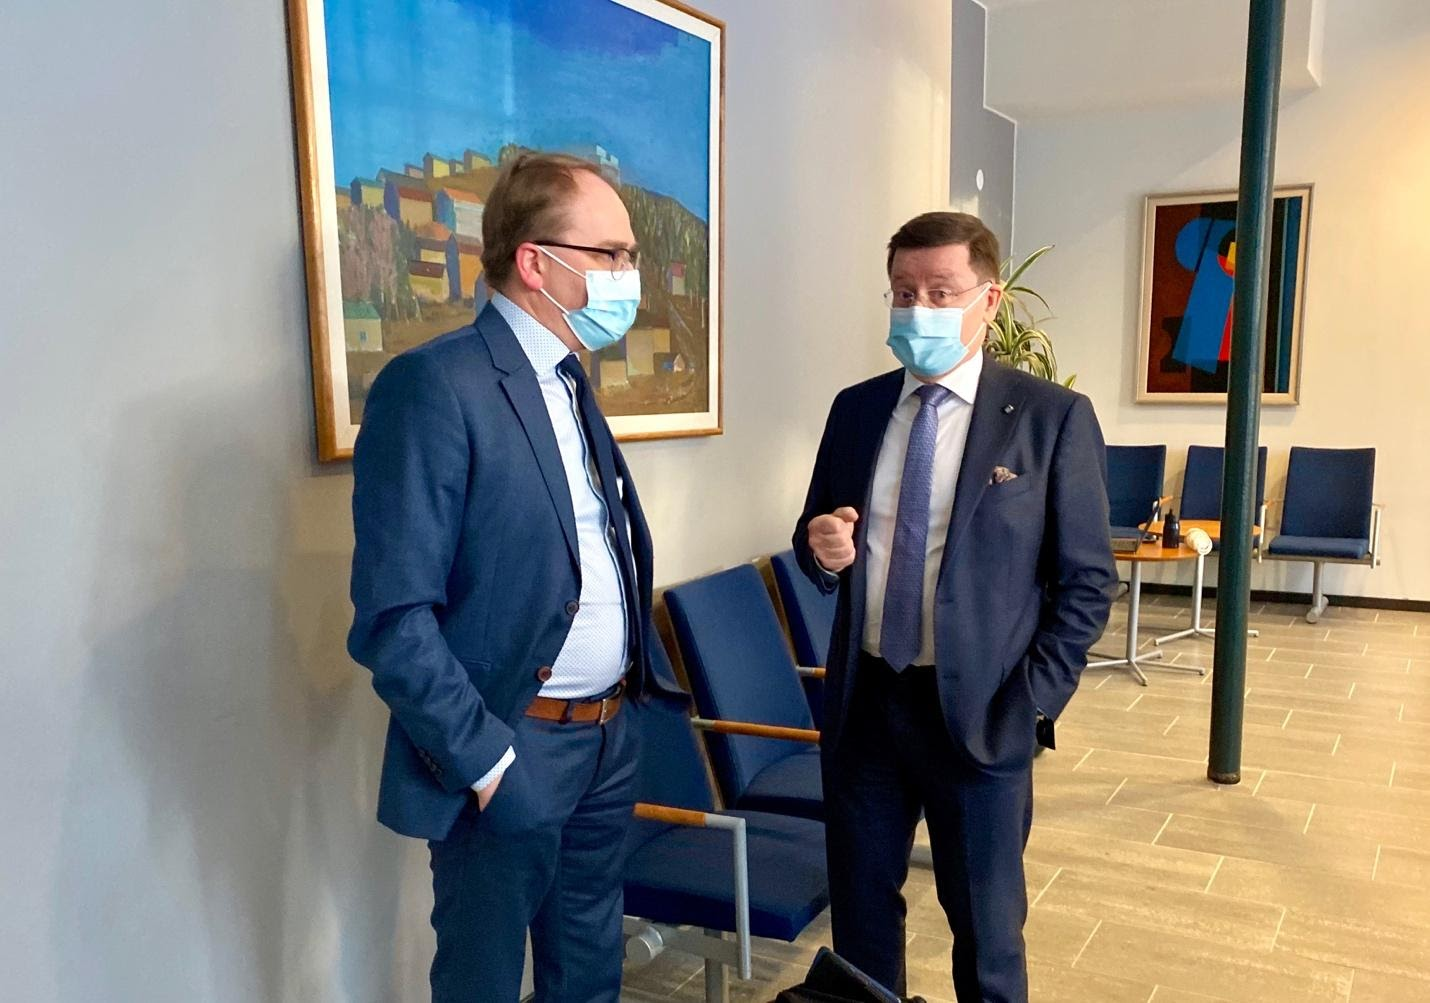 Finnish state prosecutor Tom Laitinen (left) and Massaquoi's defense lawyer Kaarle Gummerus outside the courtroom on Monday. FrontPage Africa/Saila Huusko